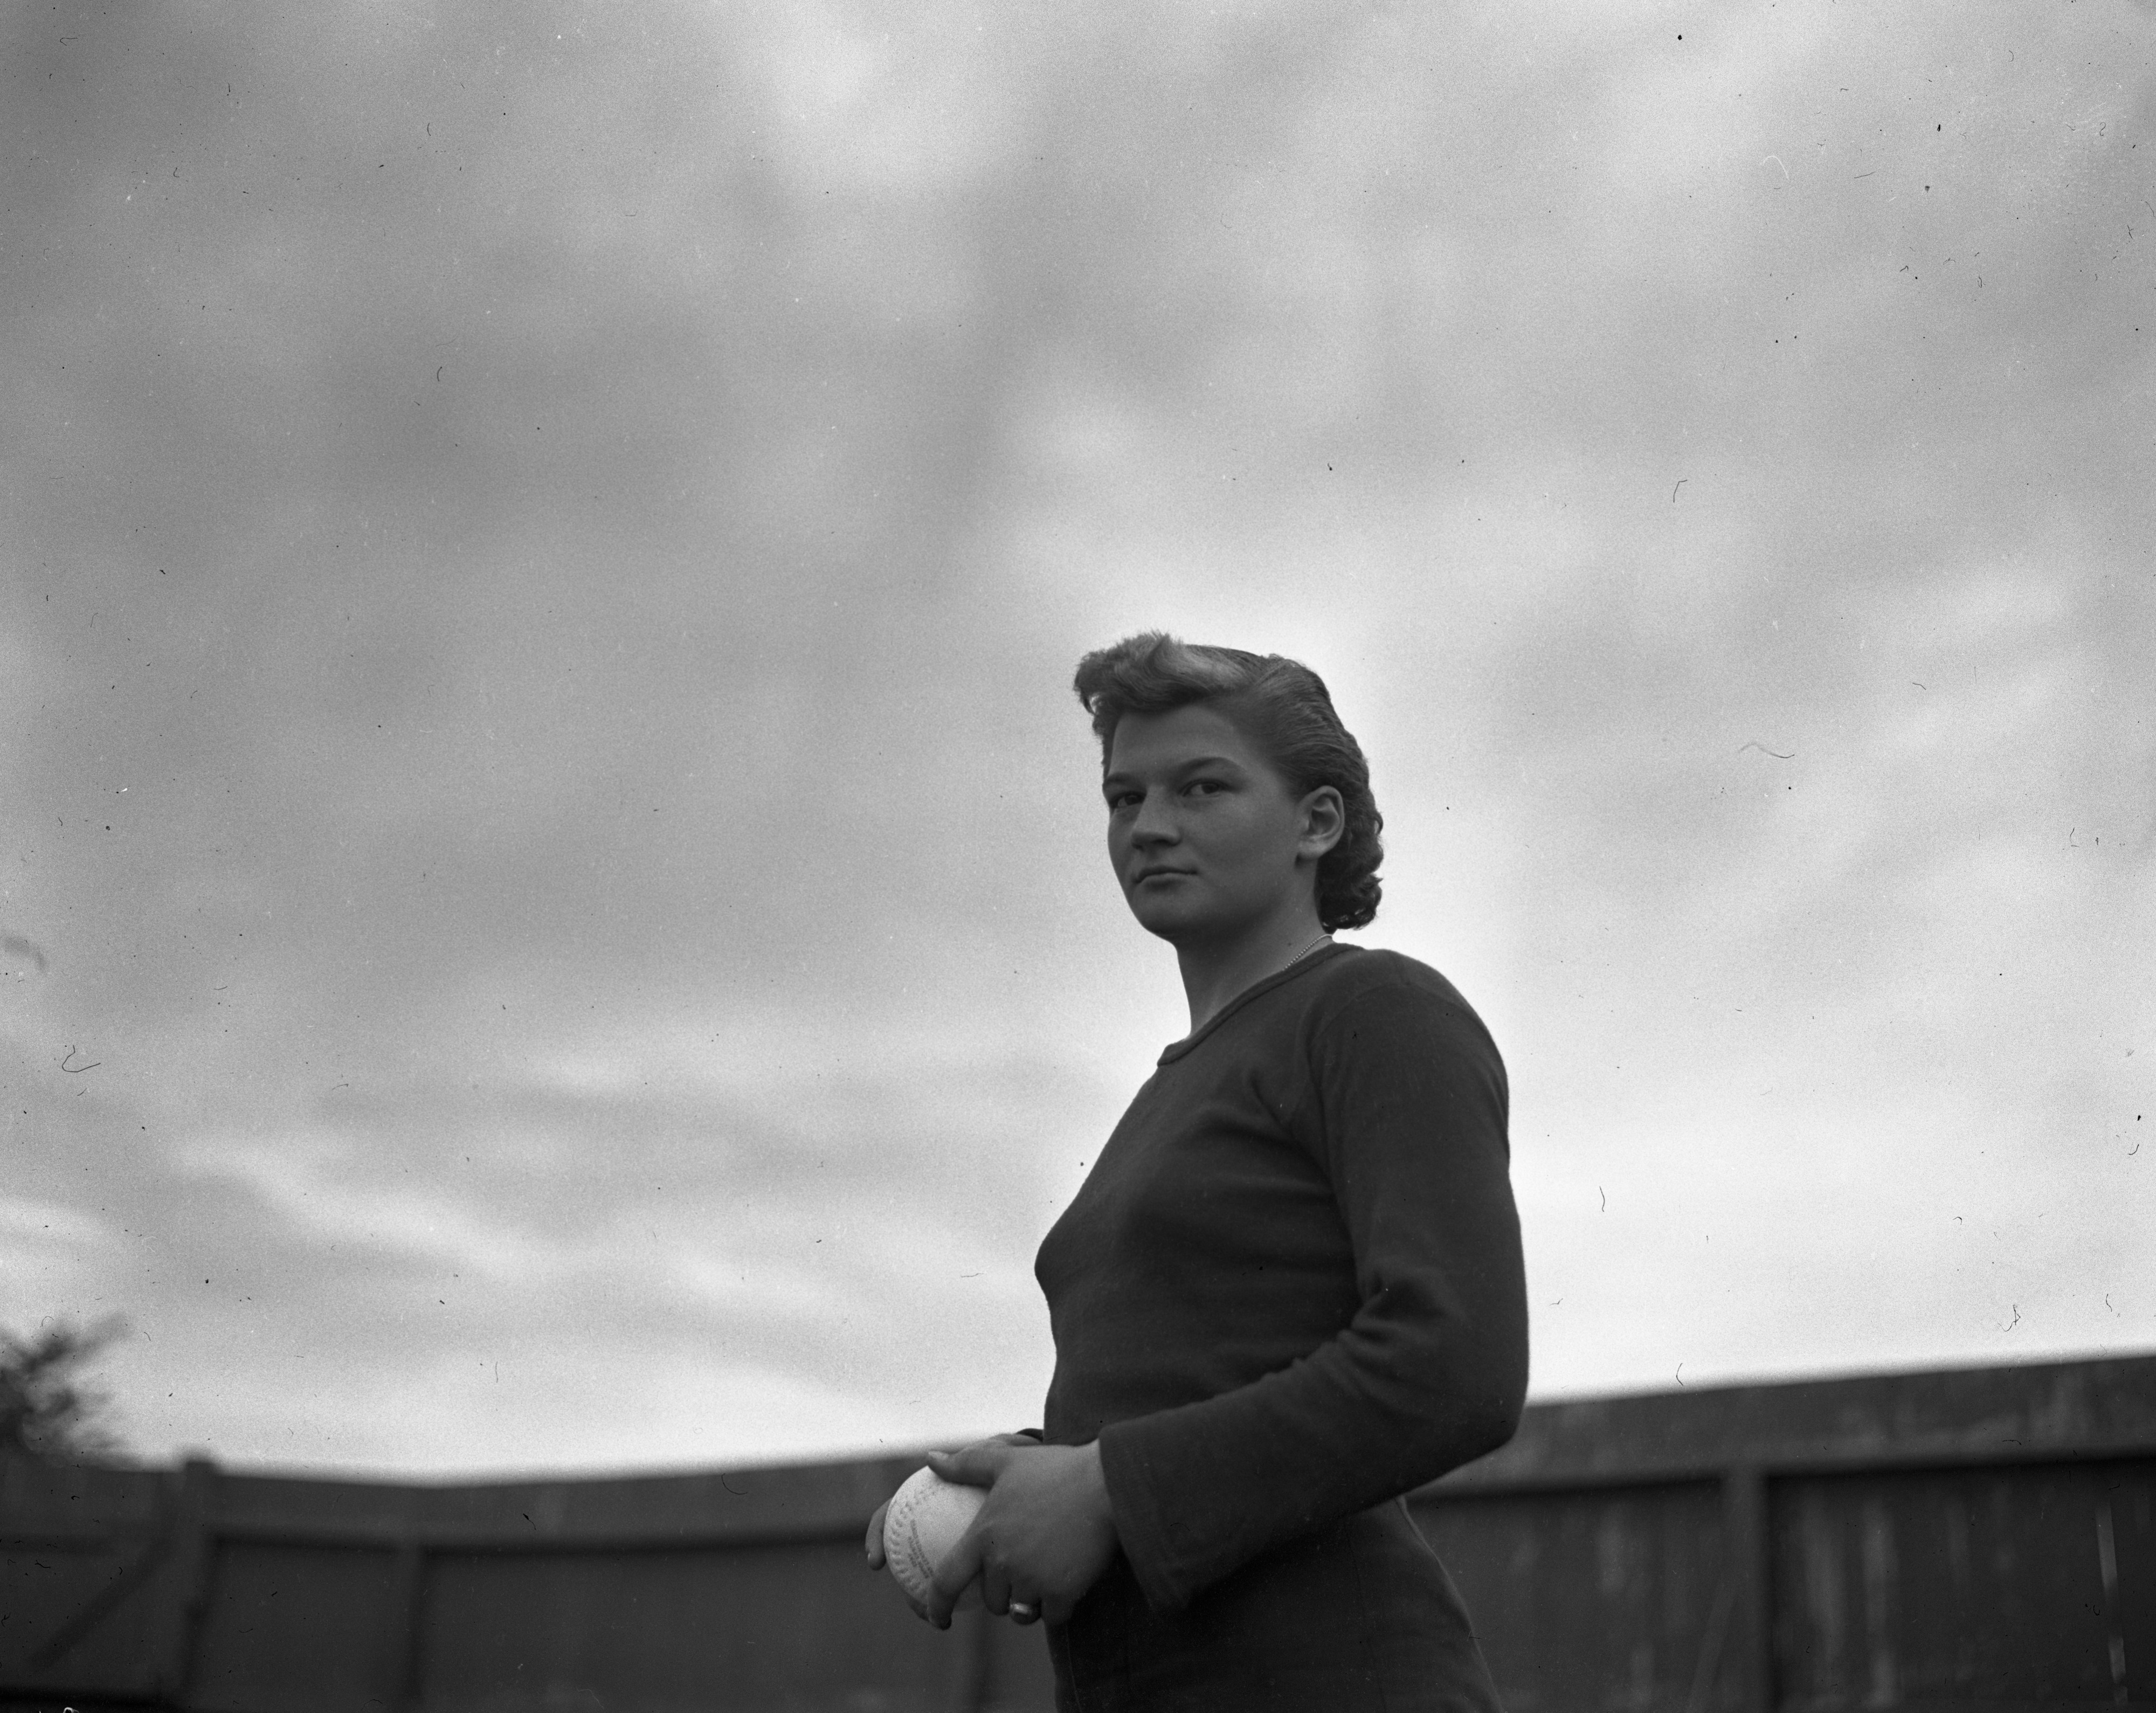 Jean Smith, star pitcher for Dad's Root Beer girls team, September 1947 image